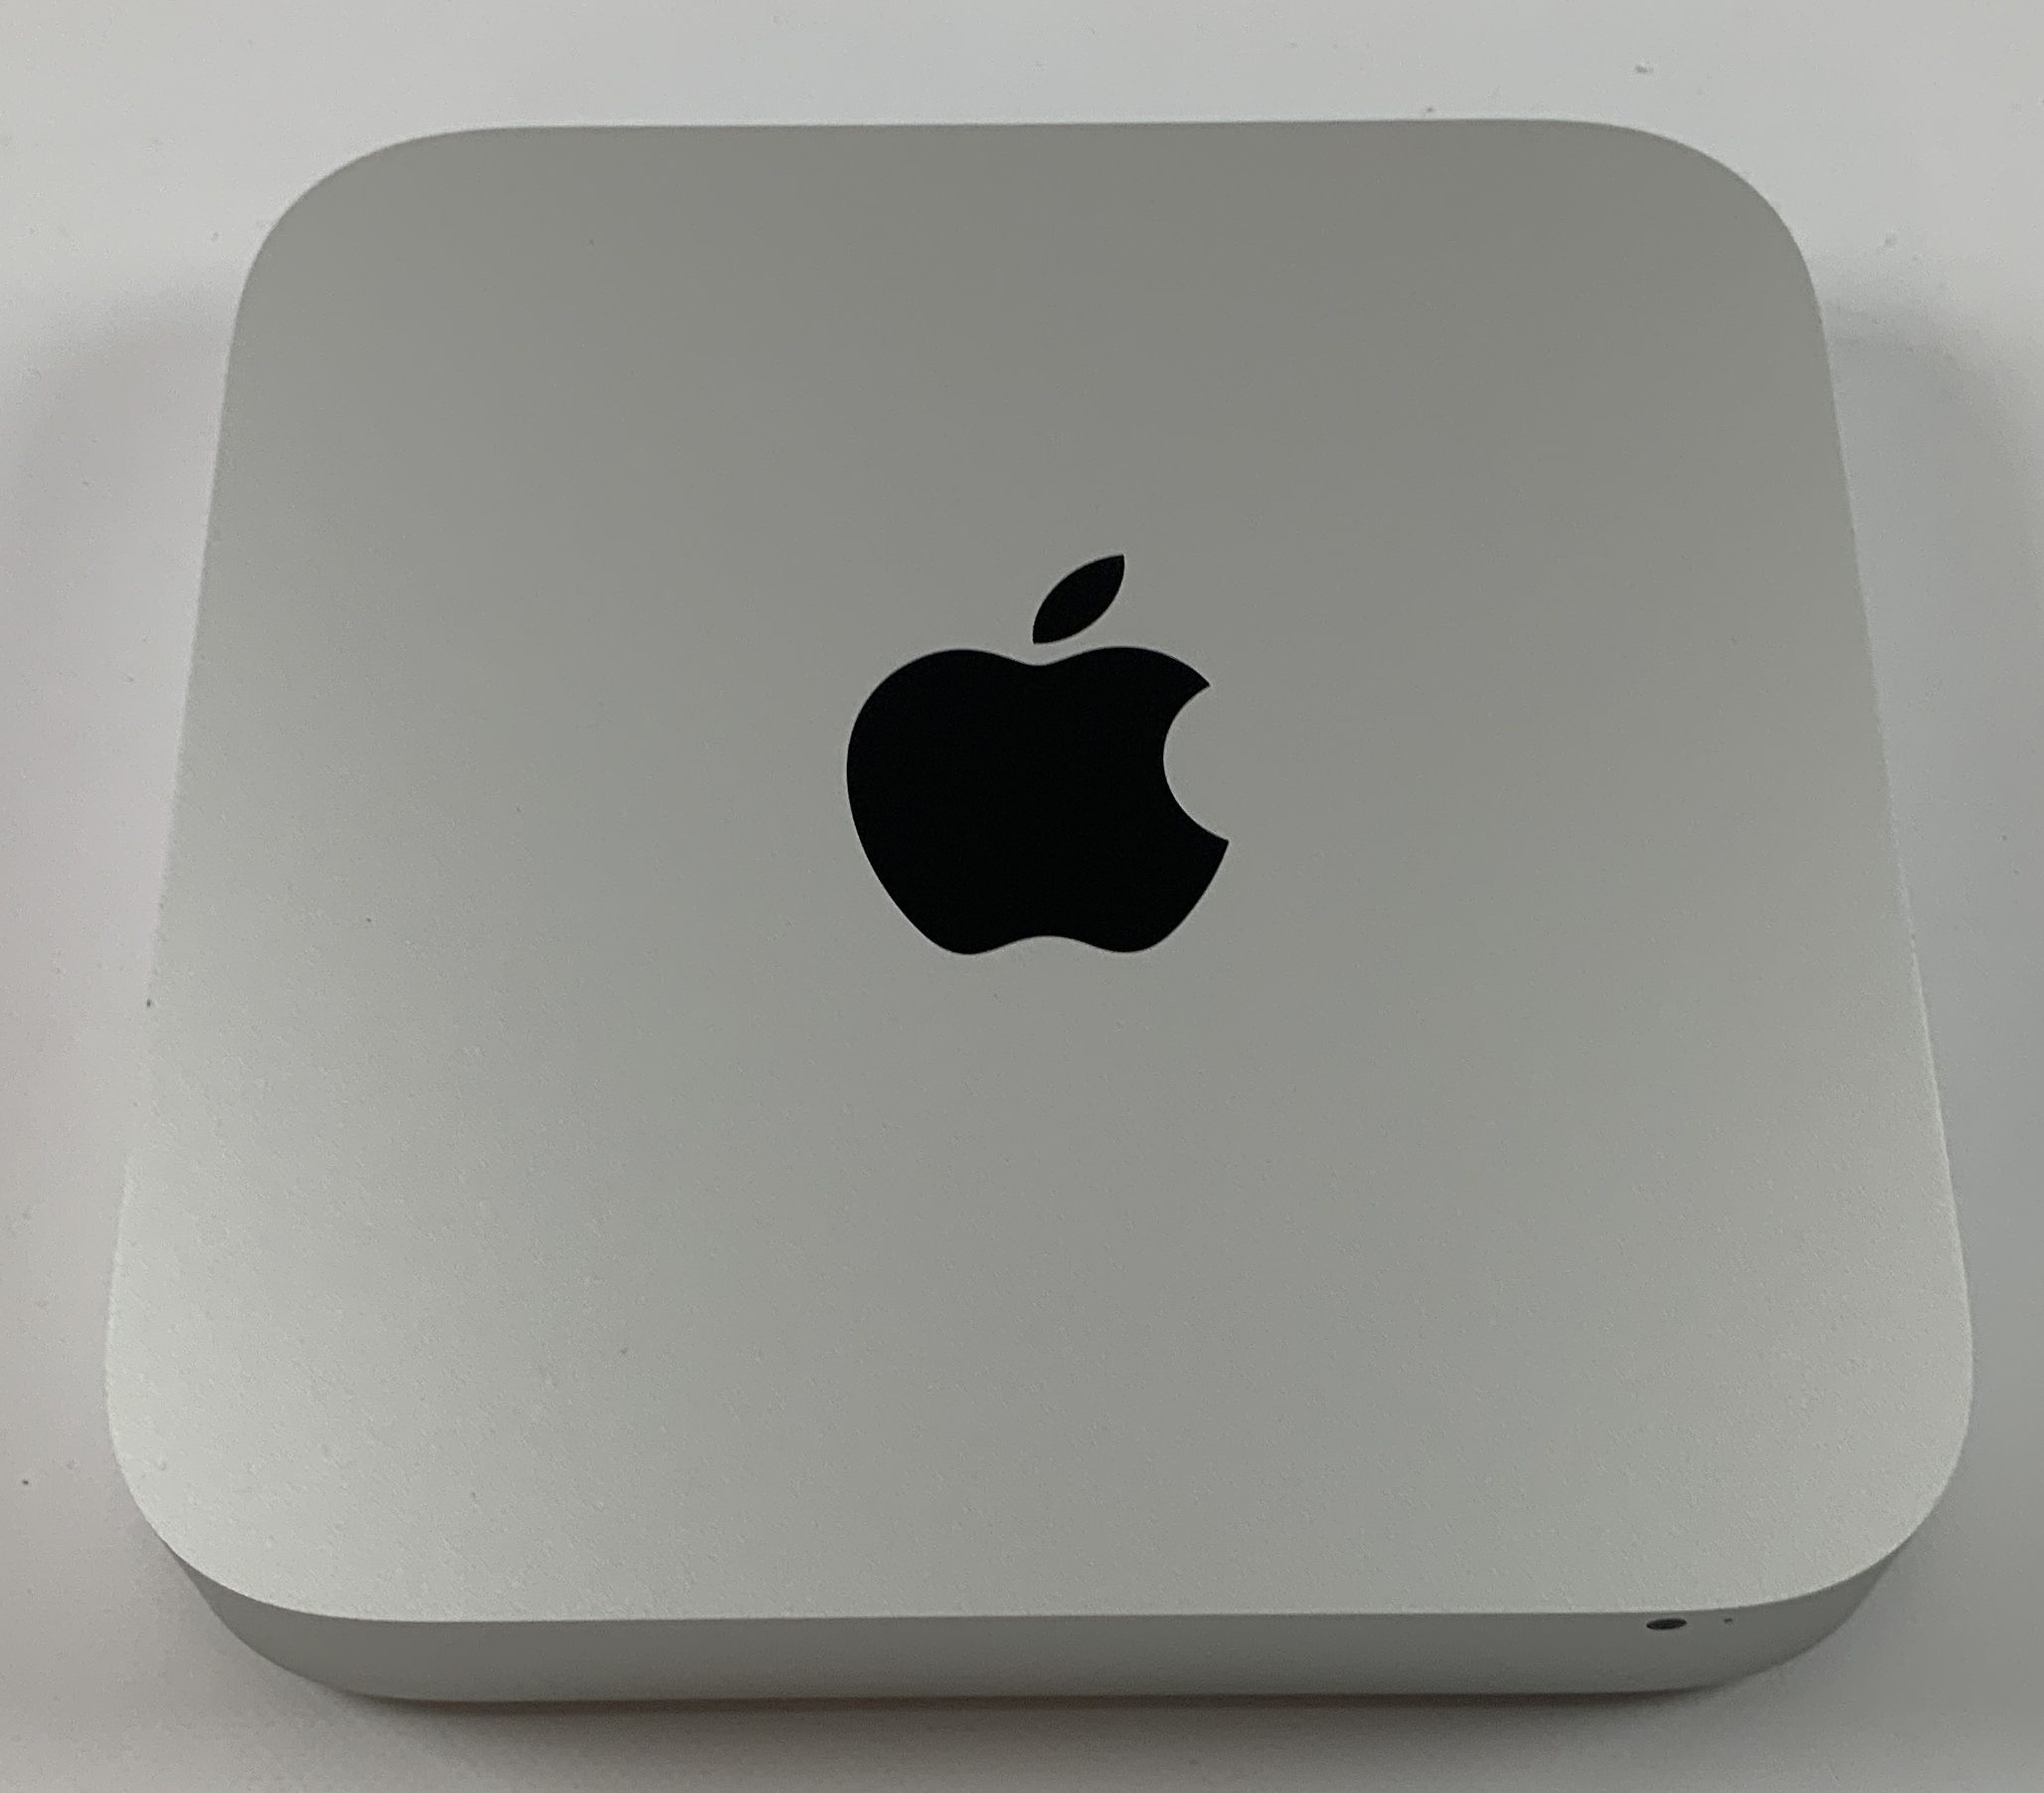 Mac Mini Late 2014 (Intel Core i5 2.6 GHz 8 GB RAM 1 TB HDD), Intel Core i5 2.6 GHz, 8 GB RAM, 1 TB HDD, imagen 1